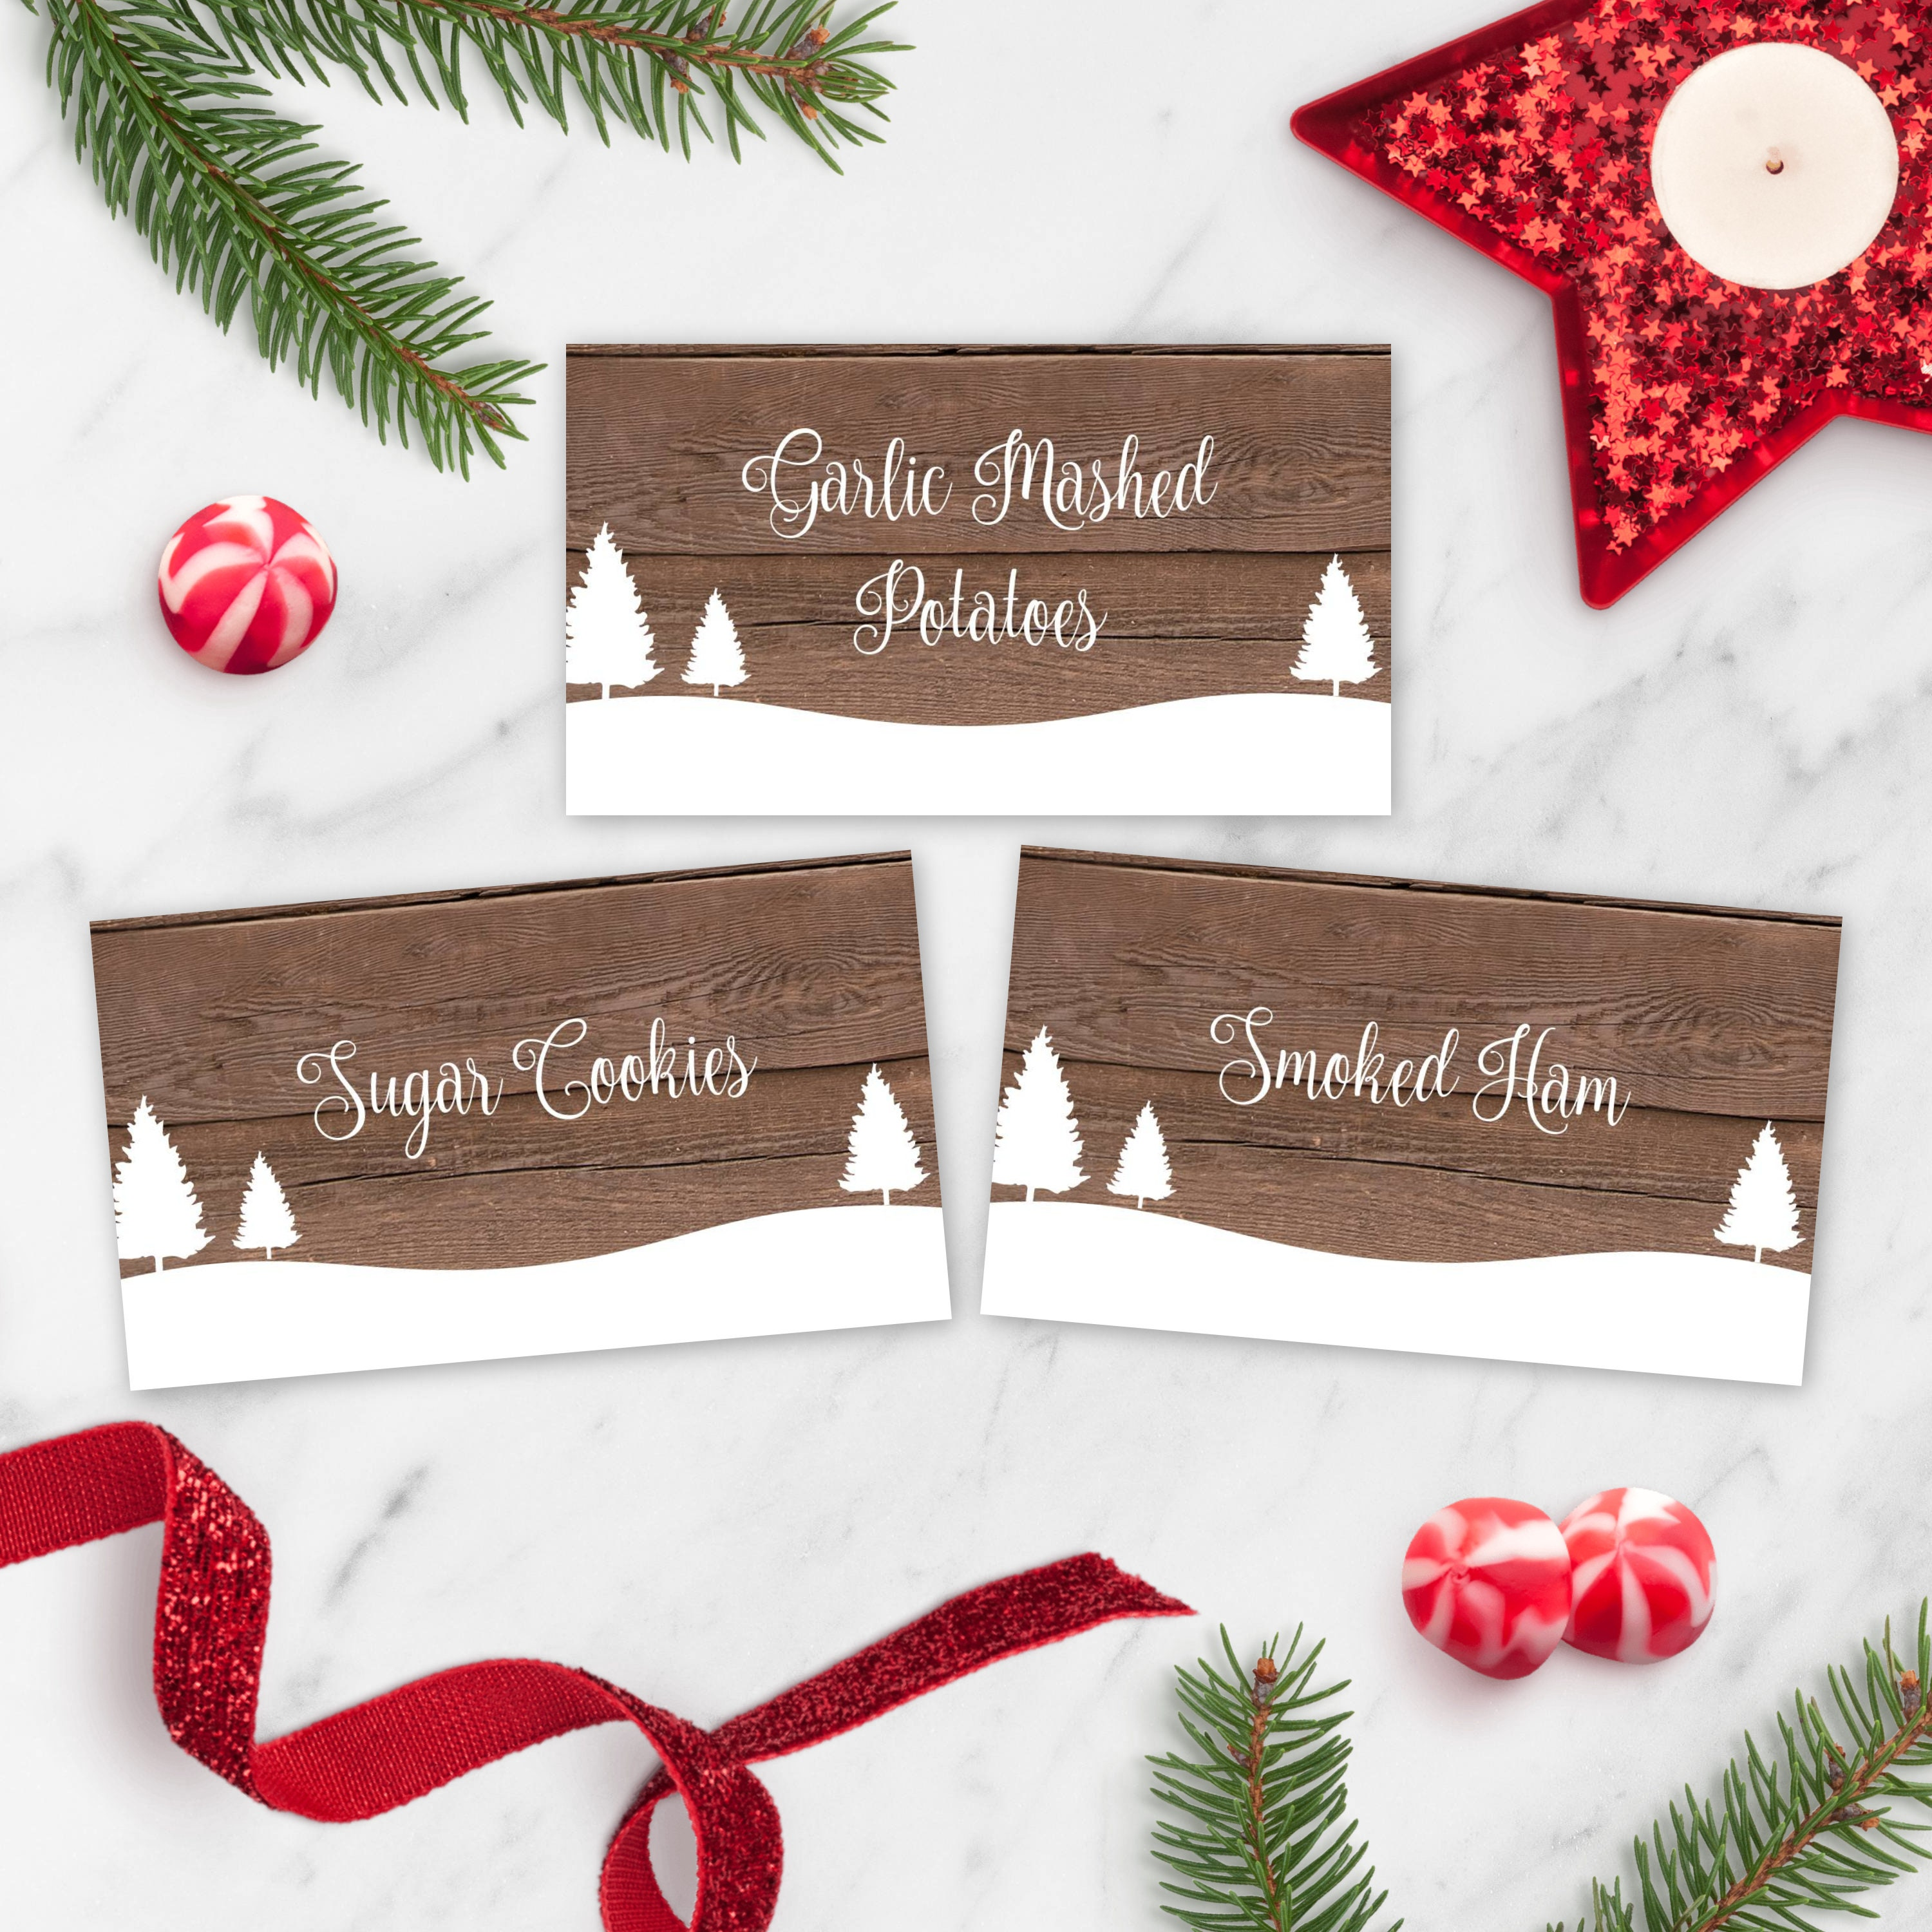 Holiday Party Buffet Cards, Rustic Christmas Food Tent Card Template,  Printable Folding Place Cards for Christmas, Food Label Downloadable With Christmas Table Place Cards Template